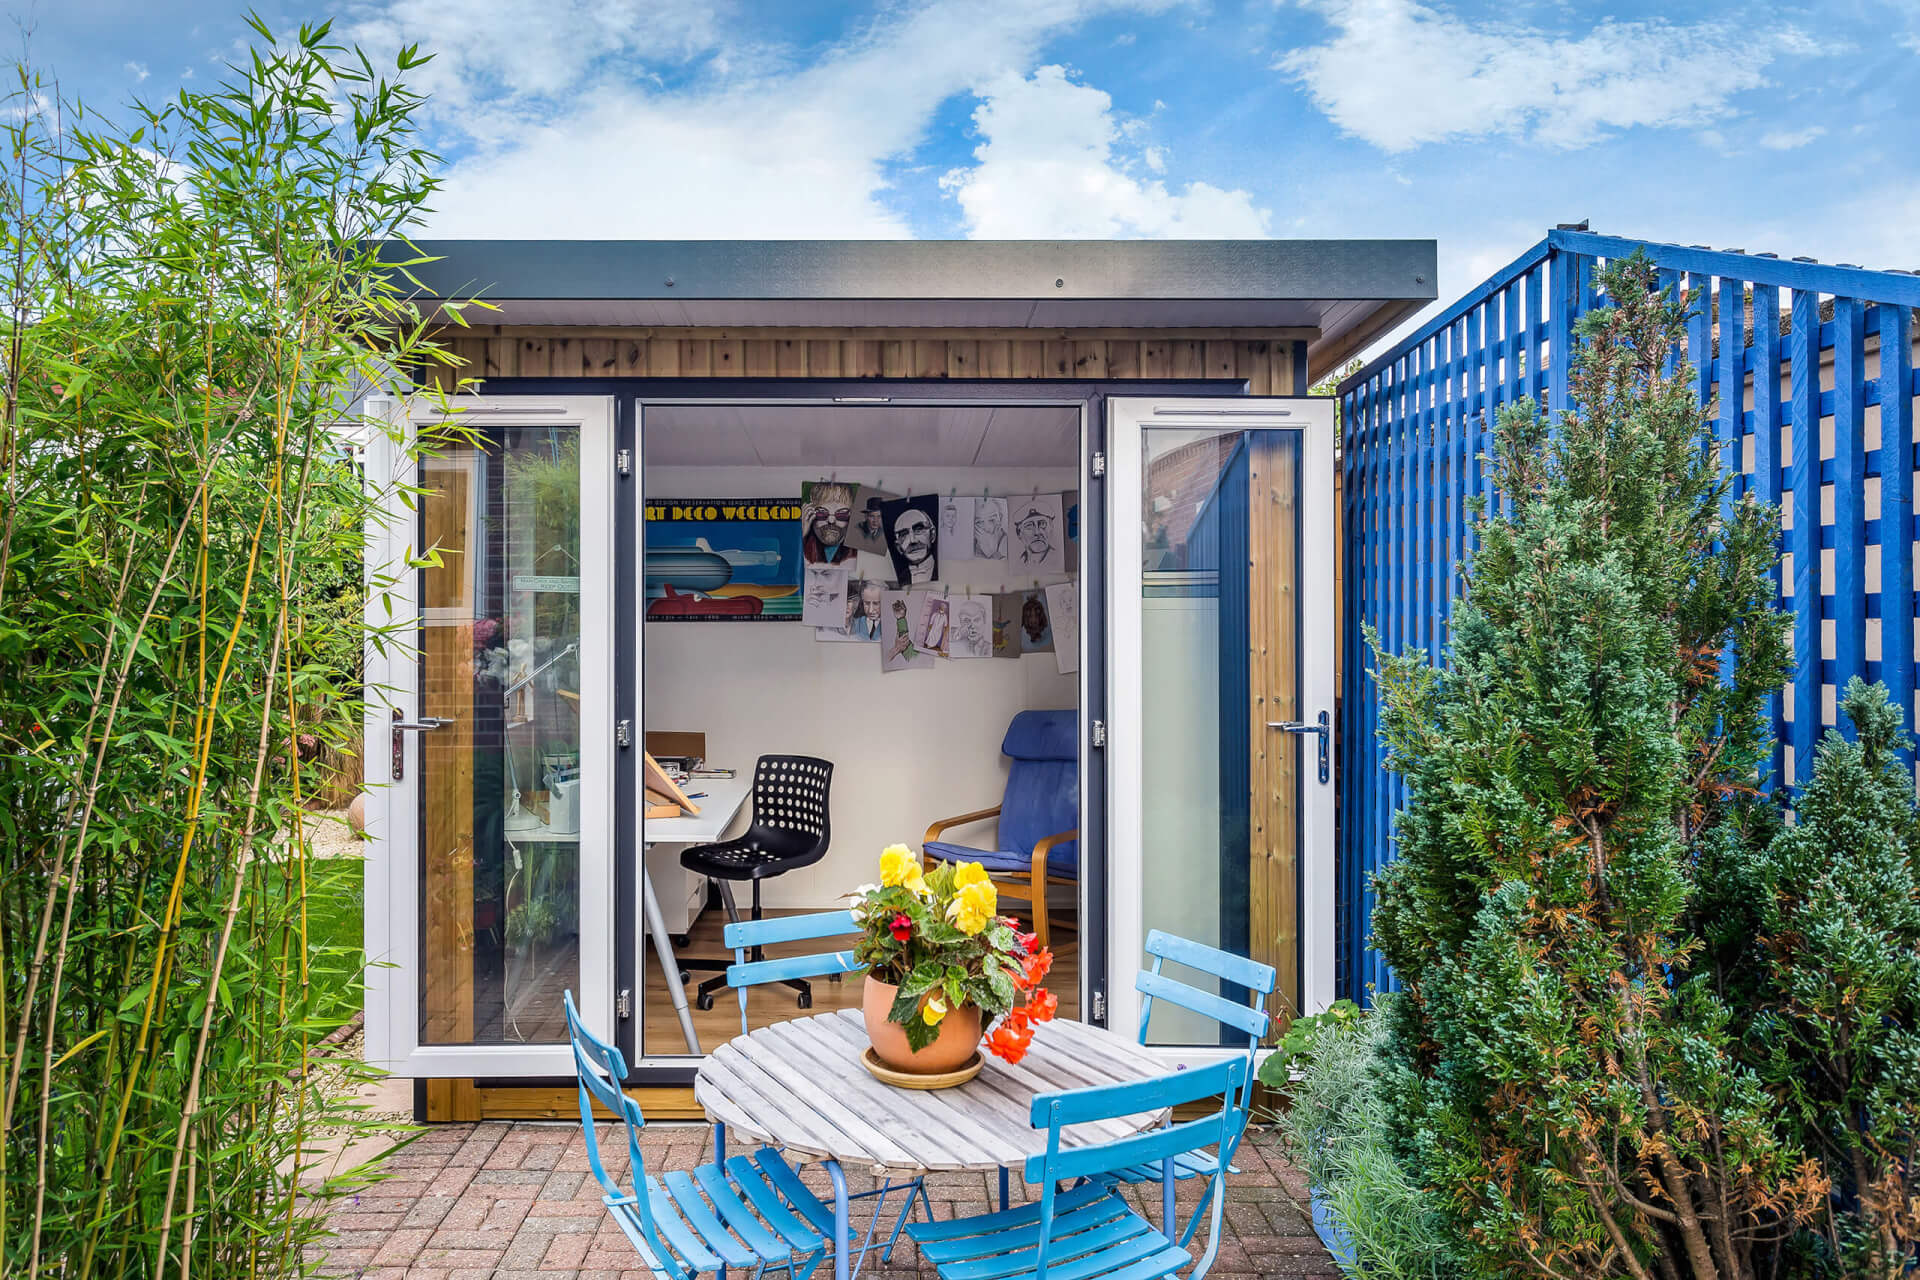 Wooden table and blue metal chairs sit in front of open garden art studio with its french doors open wide.